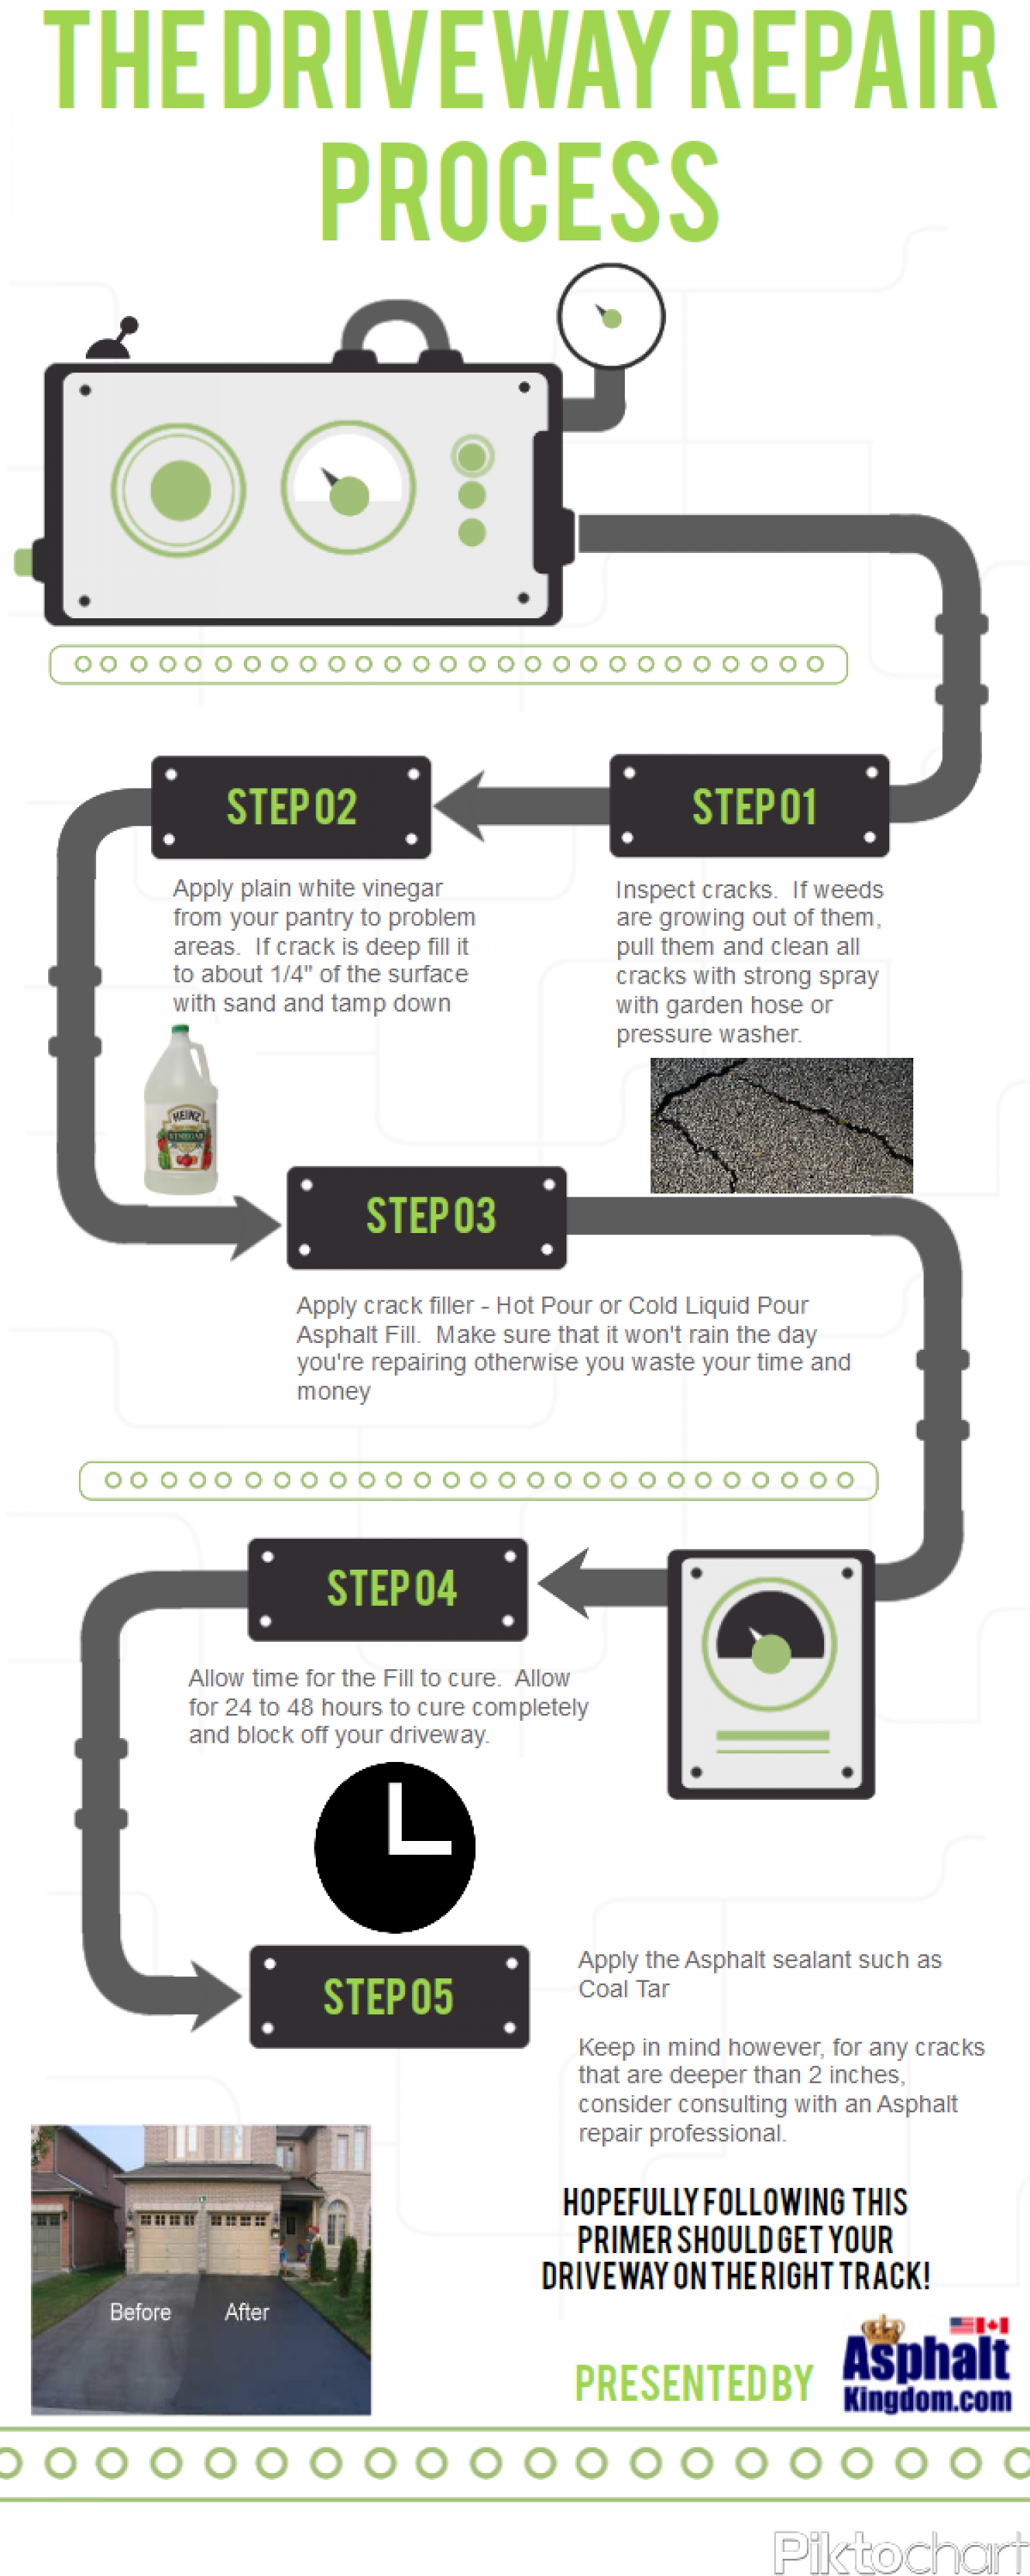 The Driveway Repair Process Infographic